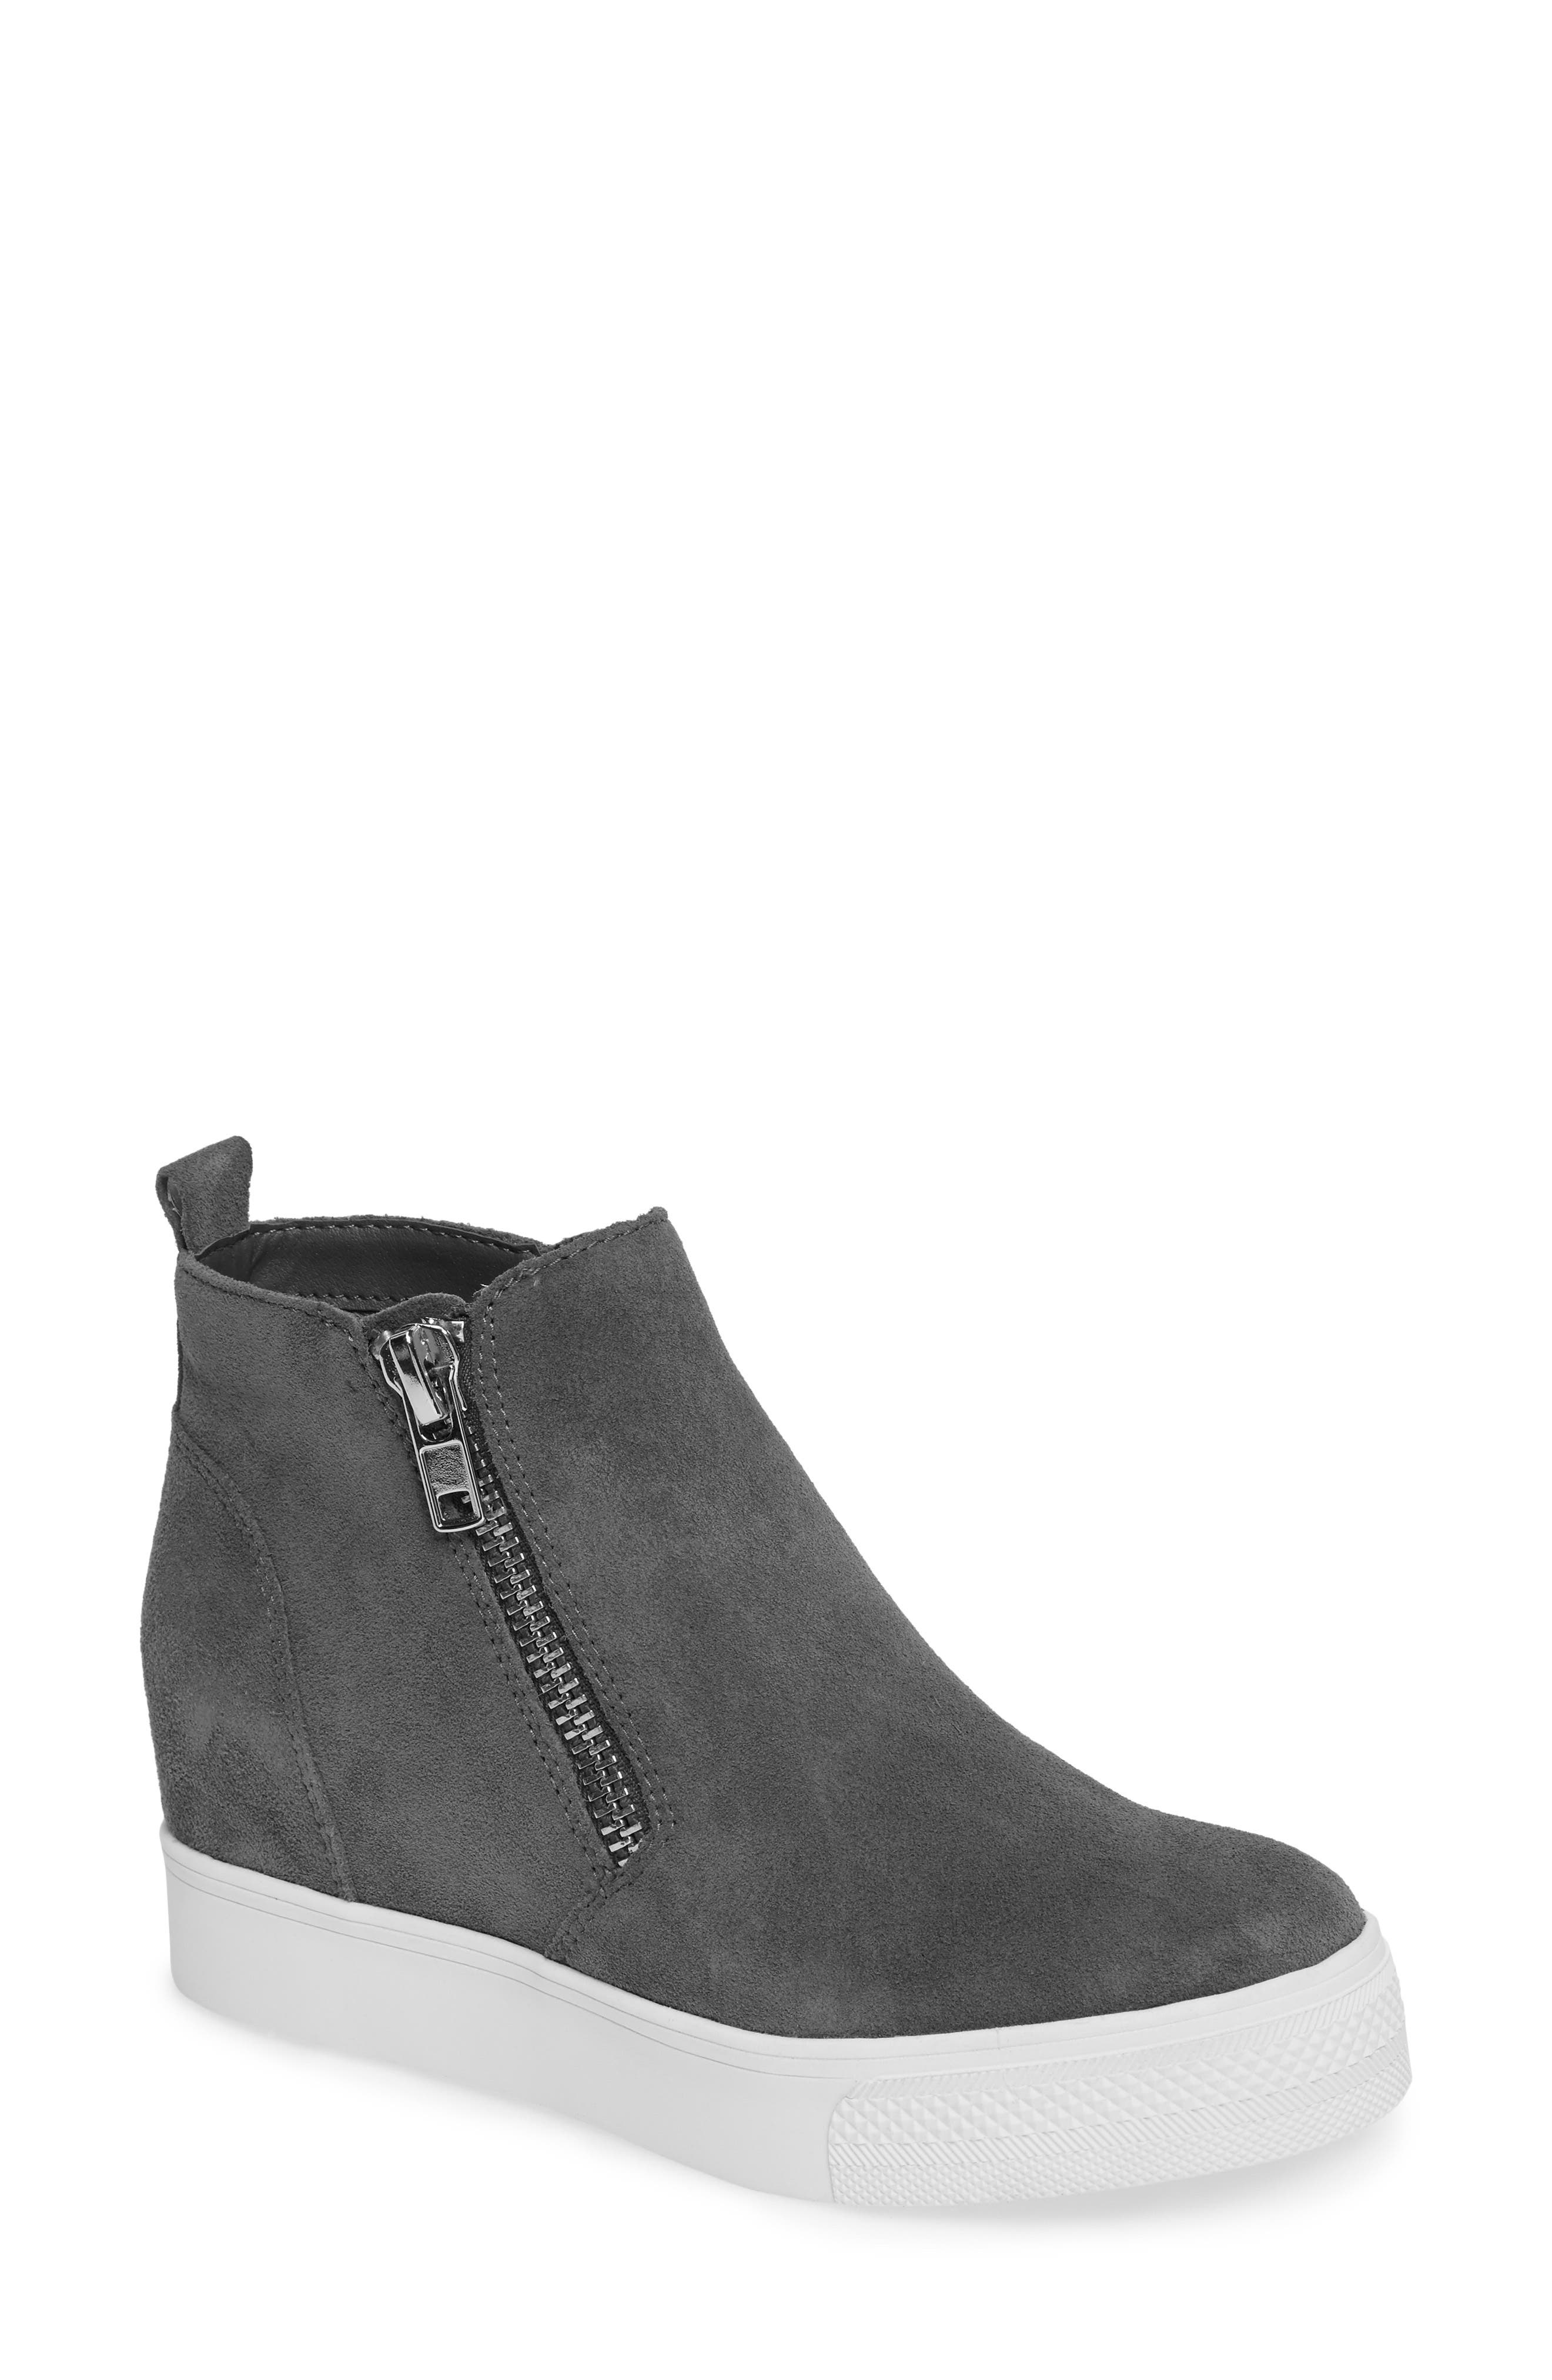 Alternate Image 1 Selected - Steve Madden Wedgie High Top Platform Sneaker (Women)